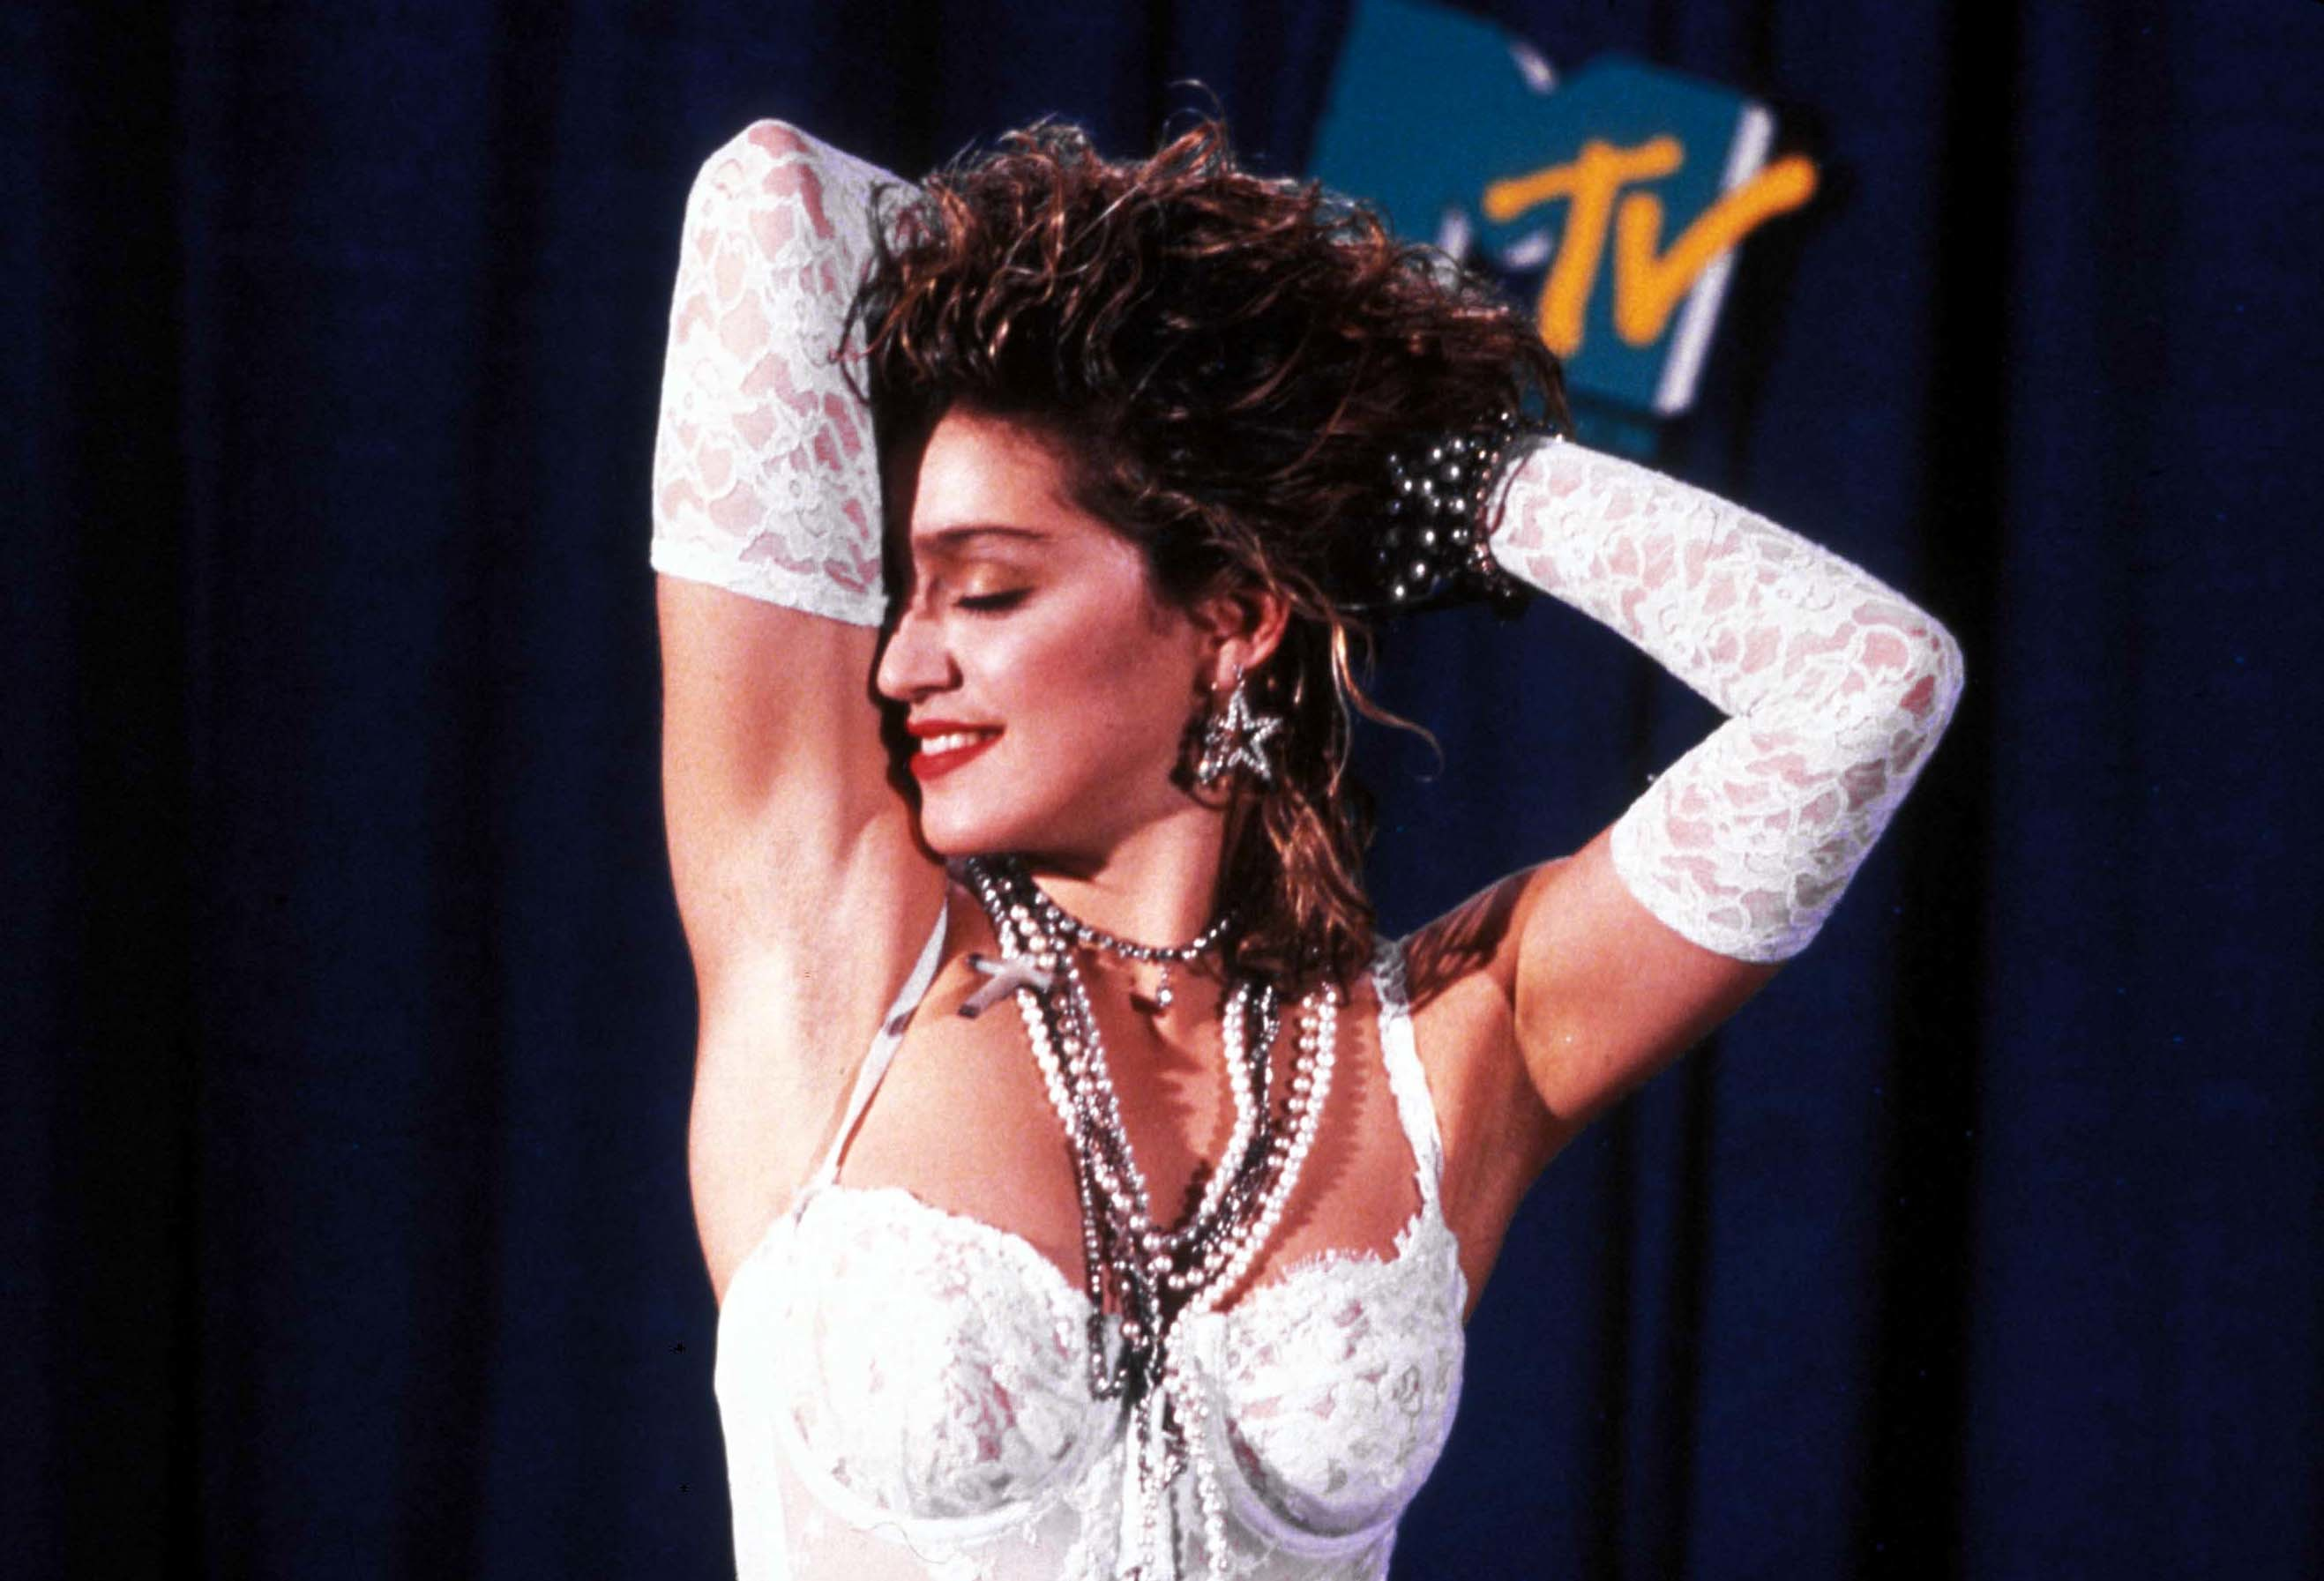 Madonna poses at the 1984 MTV Video Music Awards at the Radio City Music Hall in New York City on Sept. 14, 1984.